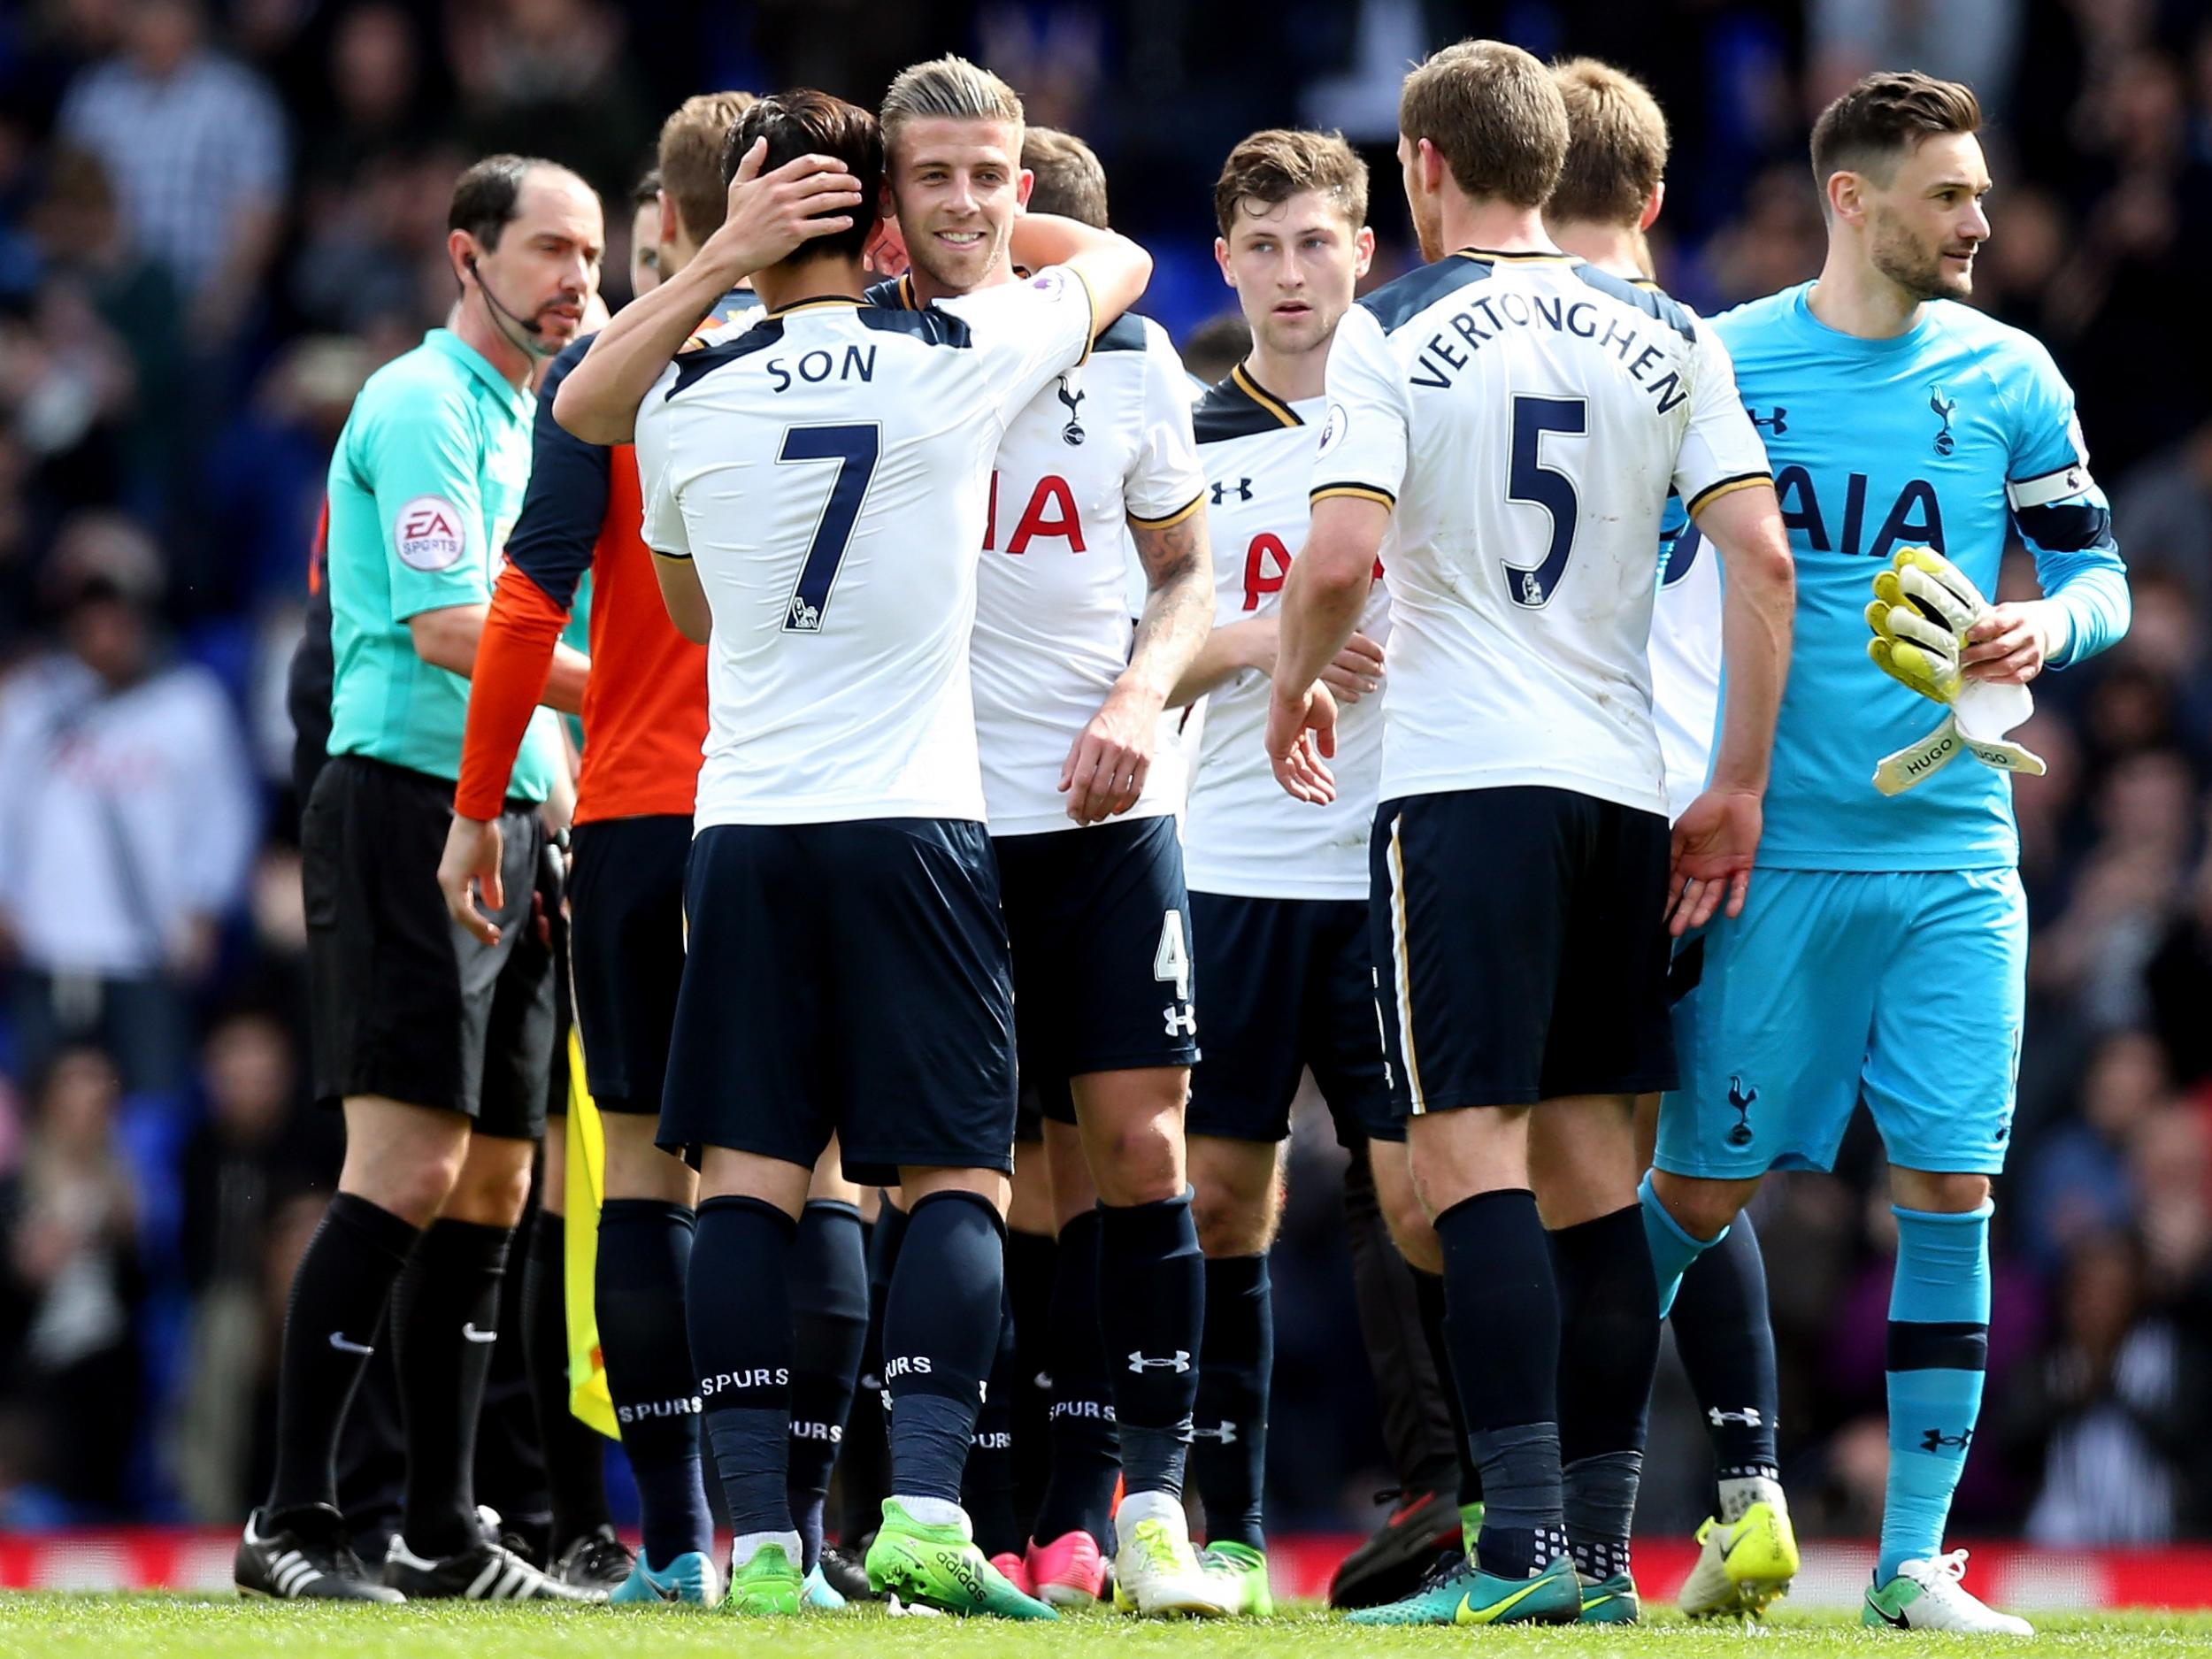 Tottenham Hotspur are the best pound-for-pound team in England - and it isn't even close to a debate